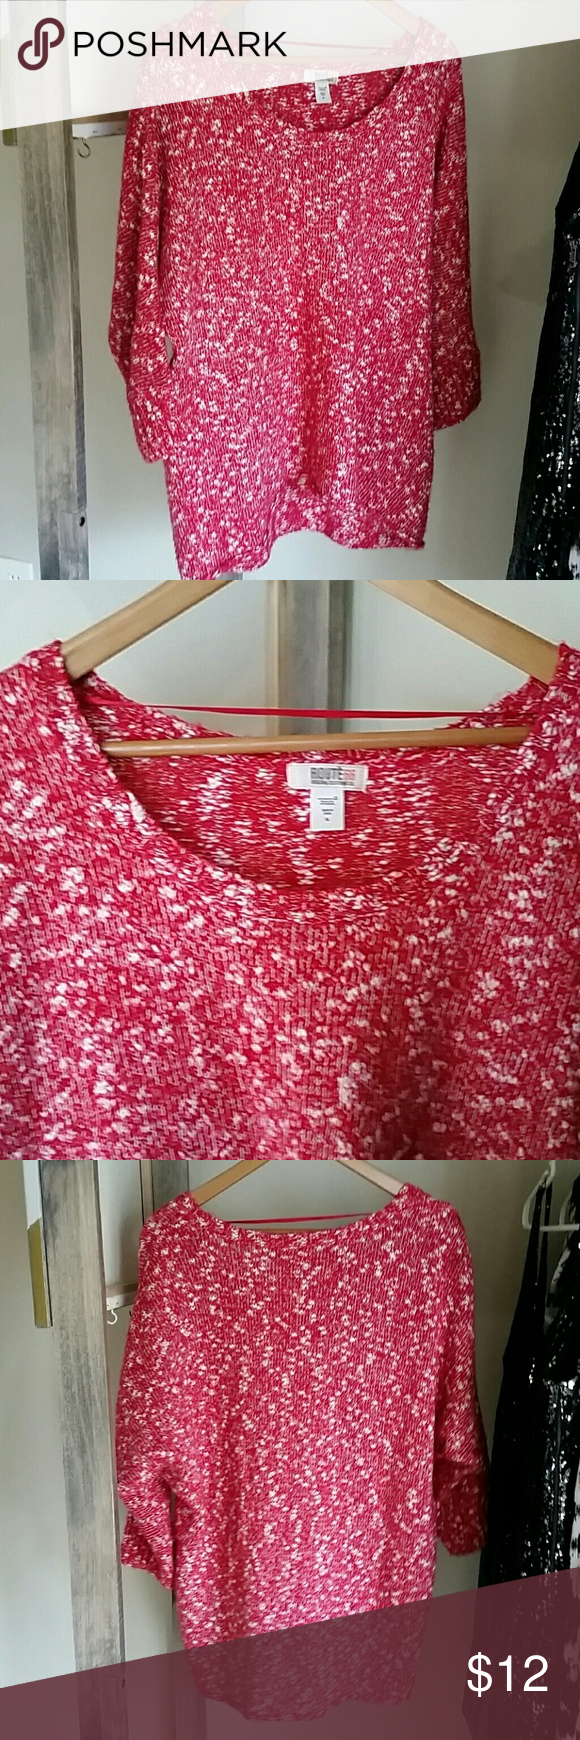 Red and white slouchy sweater Lovely red and white slouchy sweater.  Excellent condition.  3/4 length sleeves. Route 66 Sweaters